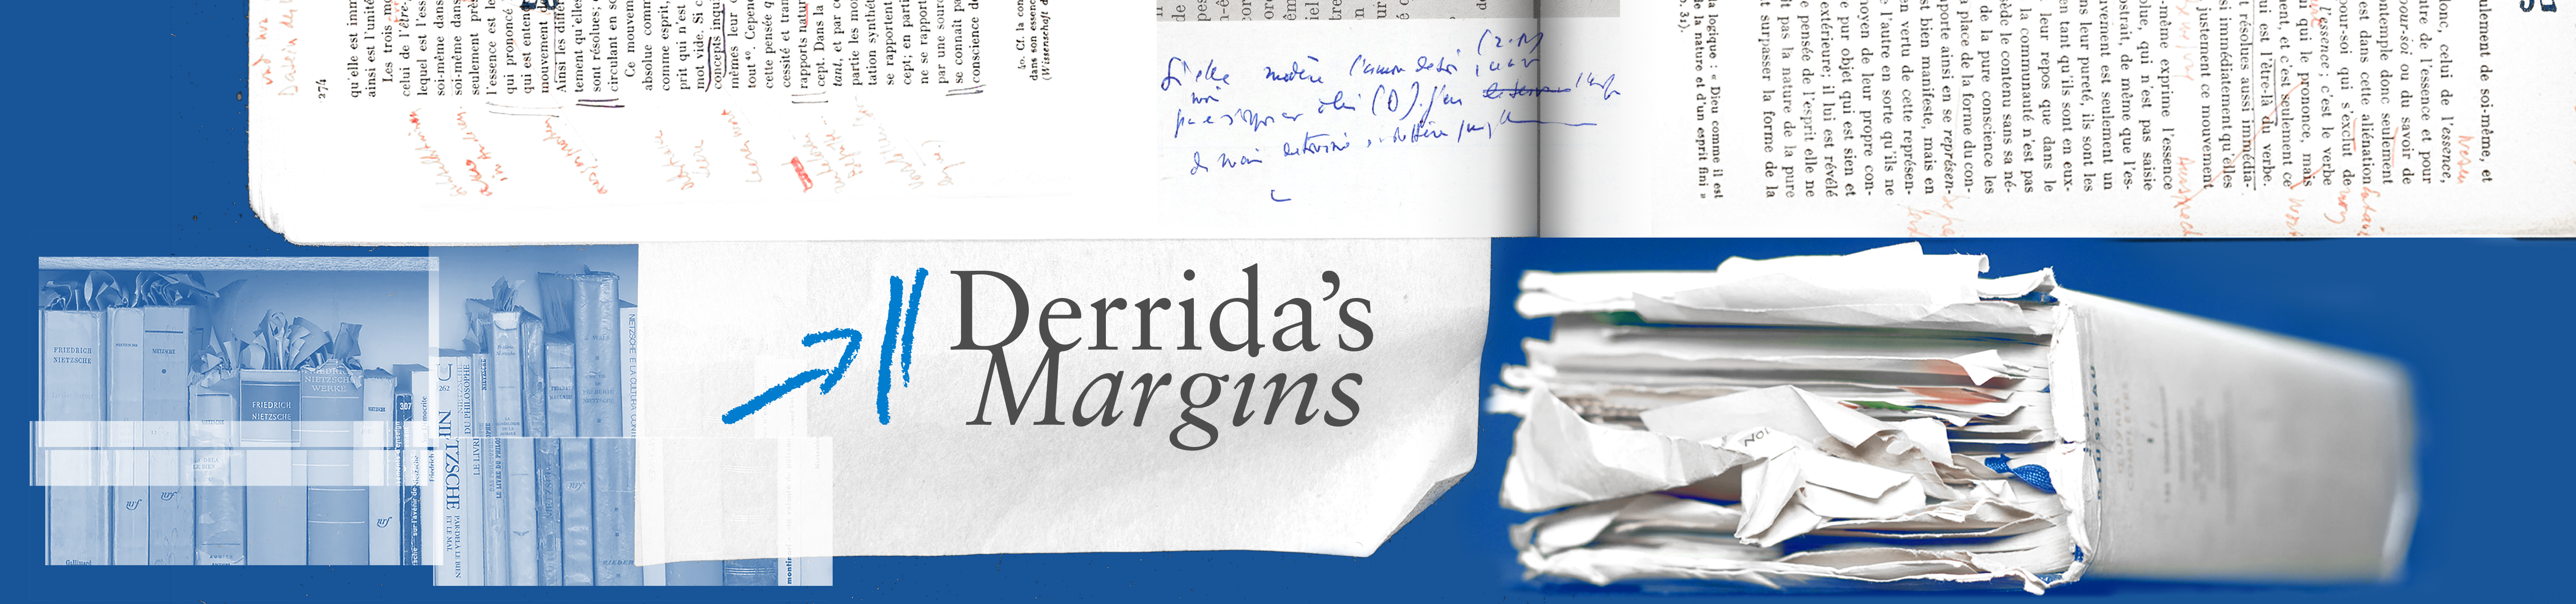 """Lessons learned from building """"Derrida's Margins"""" feature image"""